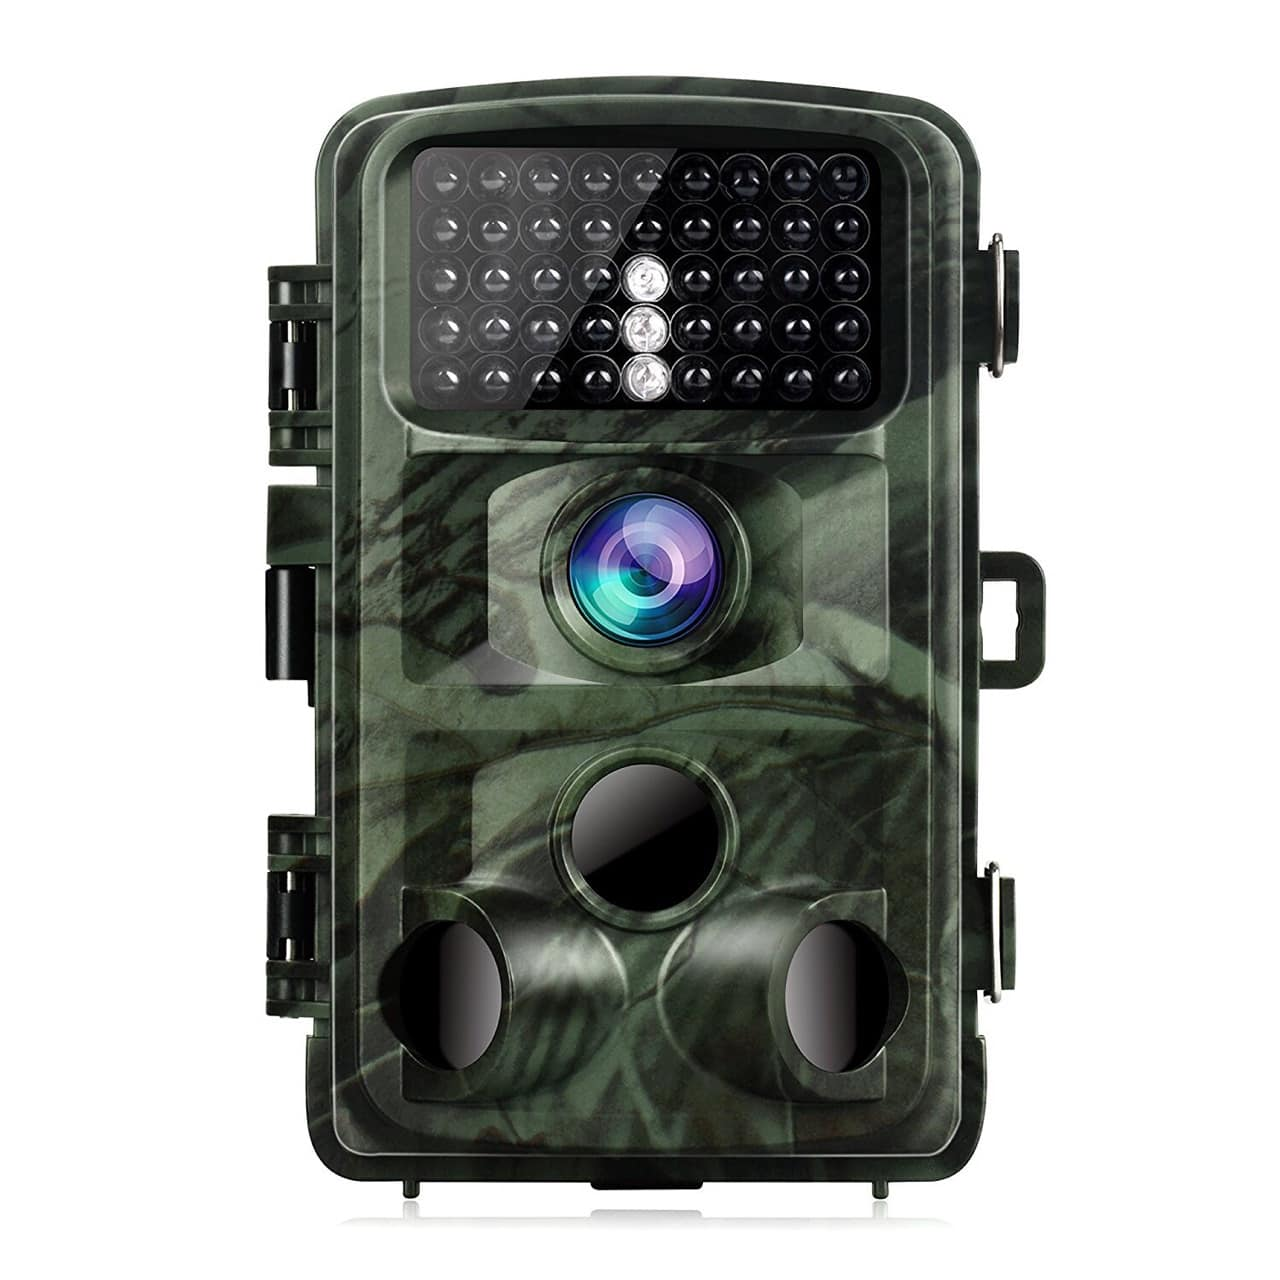 TOGUARD 14MP Trail Camera 30% off, only $48.29